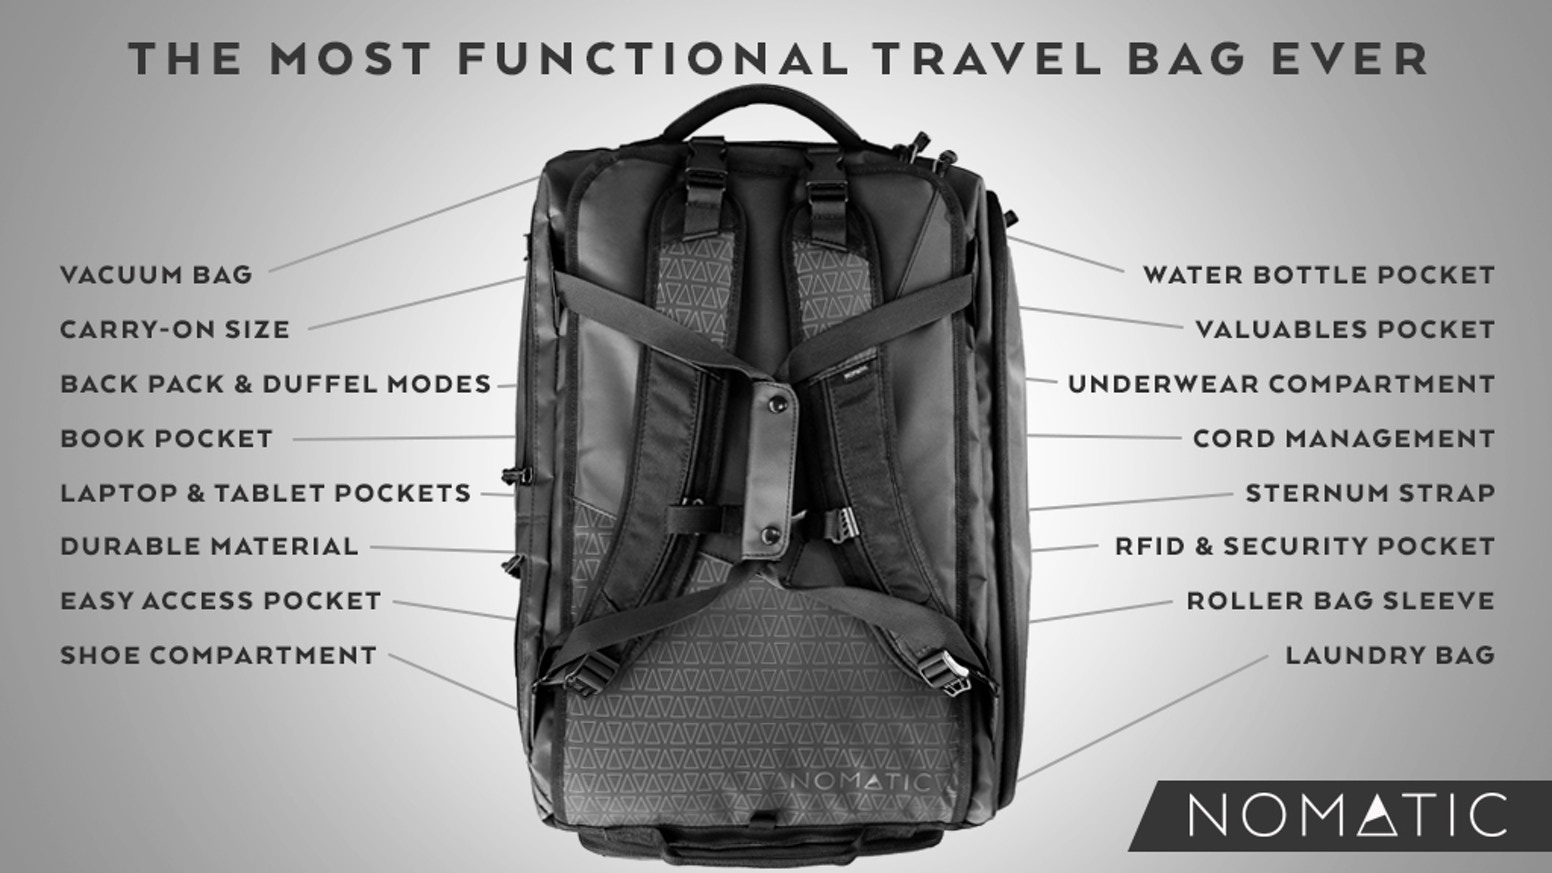 8e48a5019b5 The NOMATIC Travel Bag: The Most Functional Travel Bag Ever!